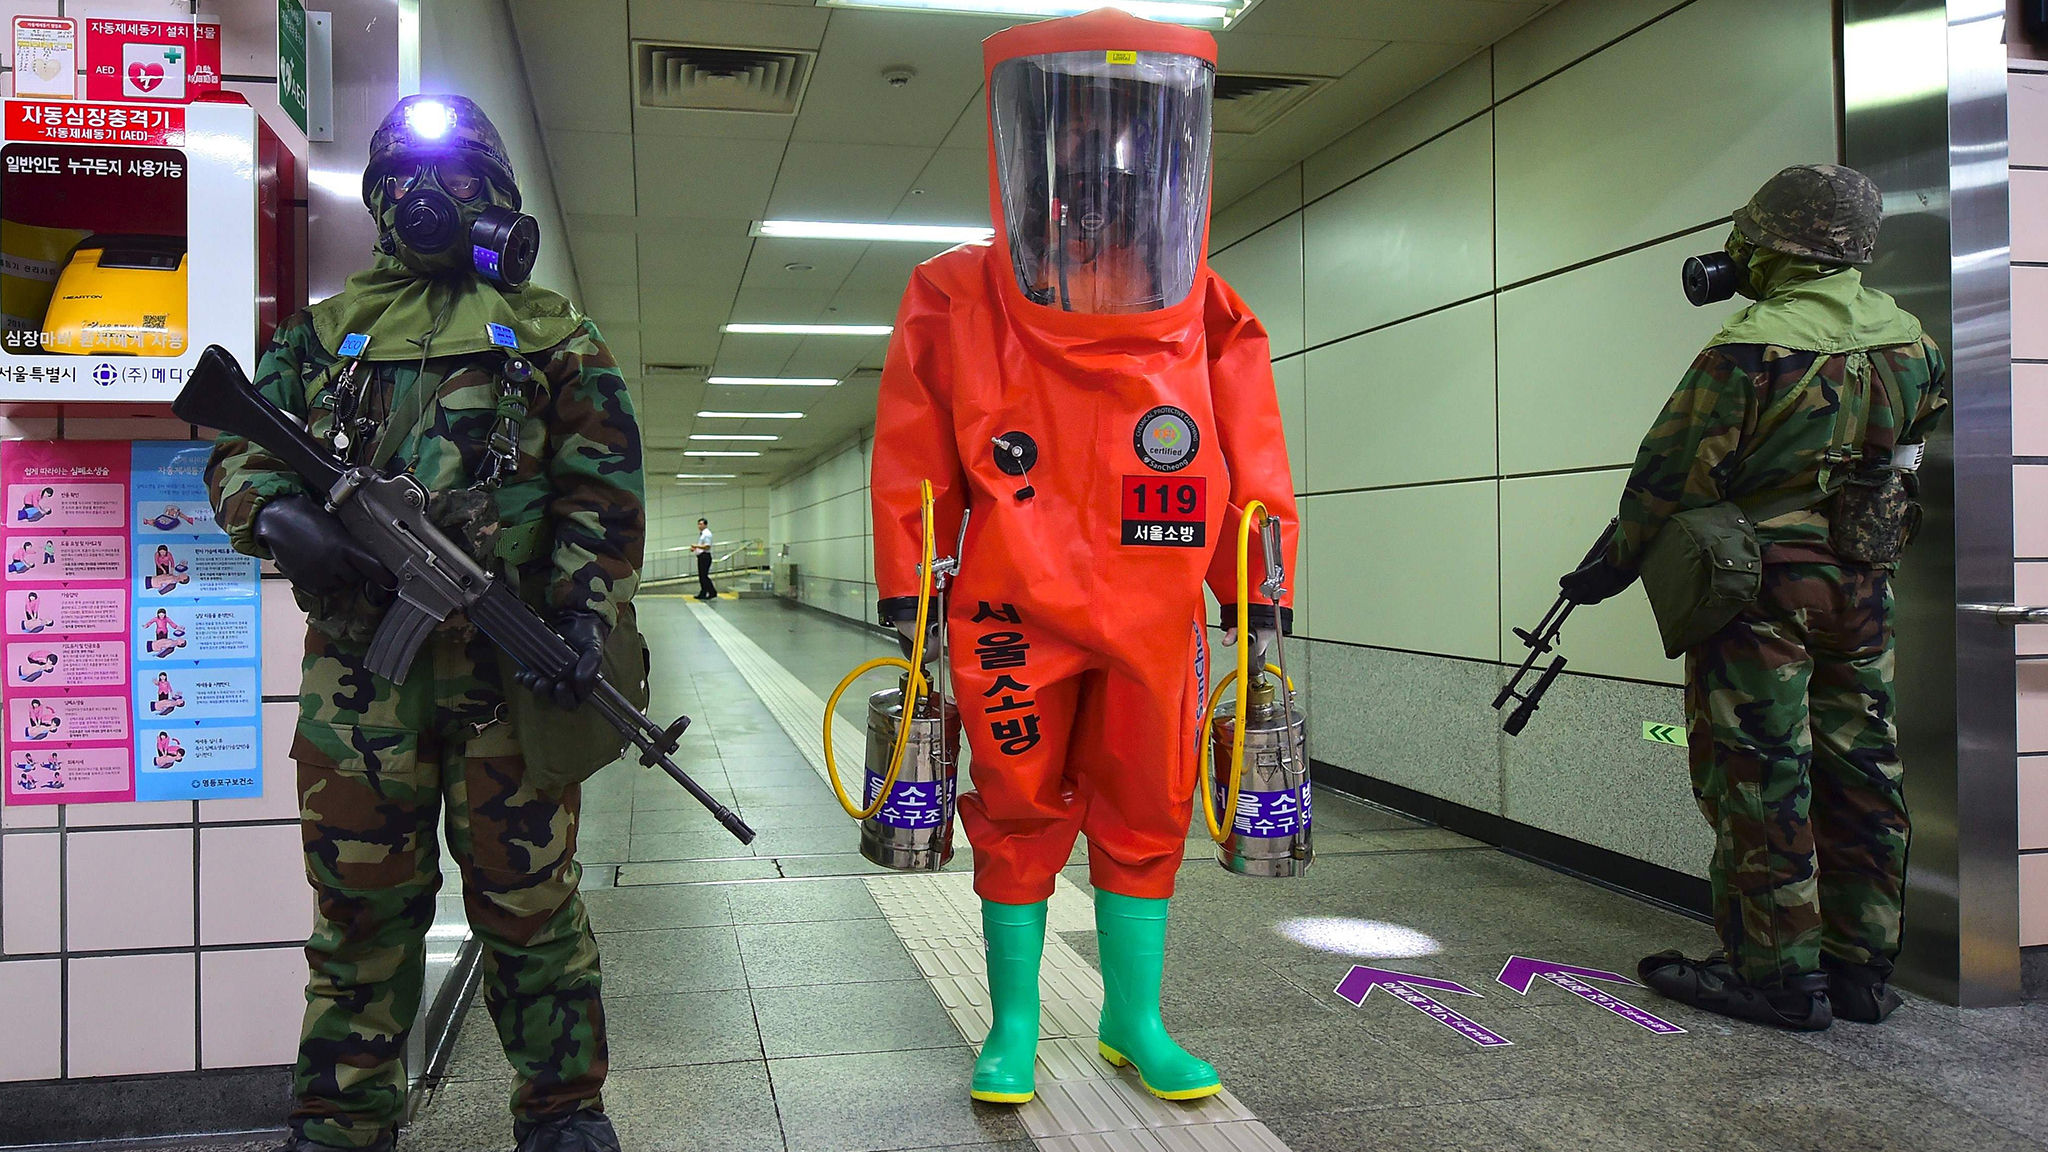 A rescue member (C) in full protective gear stands amongst South Korean soldiers wearing gas masks during an anti-terror drill on the sidelines of South Korea-US joint military exercise, called Ulchi Freedom, at a subway station in Seoul on August 23, 2016. South Korea and the United States kicked off large-scale military exercises on August 22, triggering condemnation and threats of a pre-emptive nuclear strike from North Korea